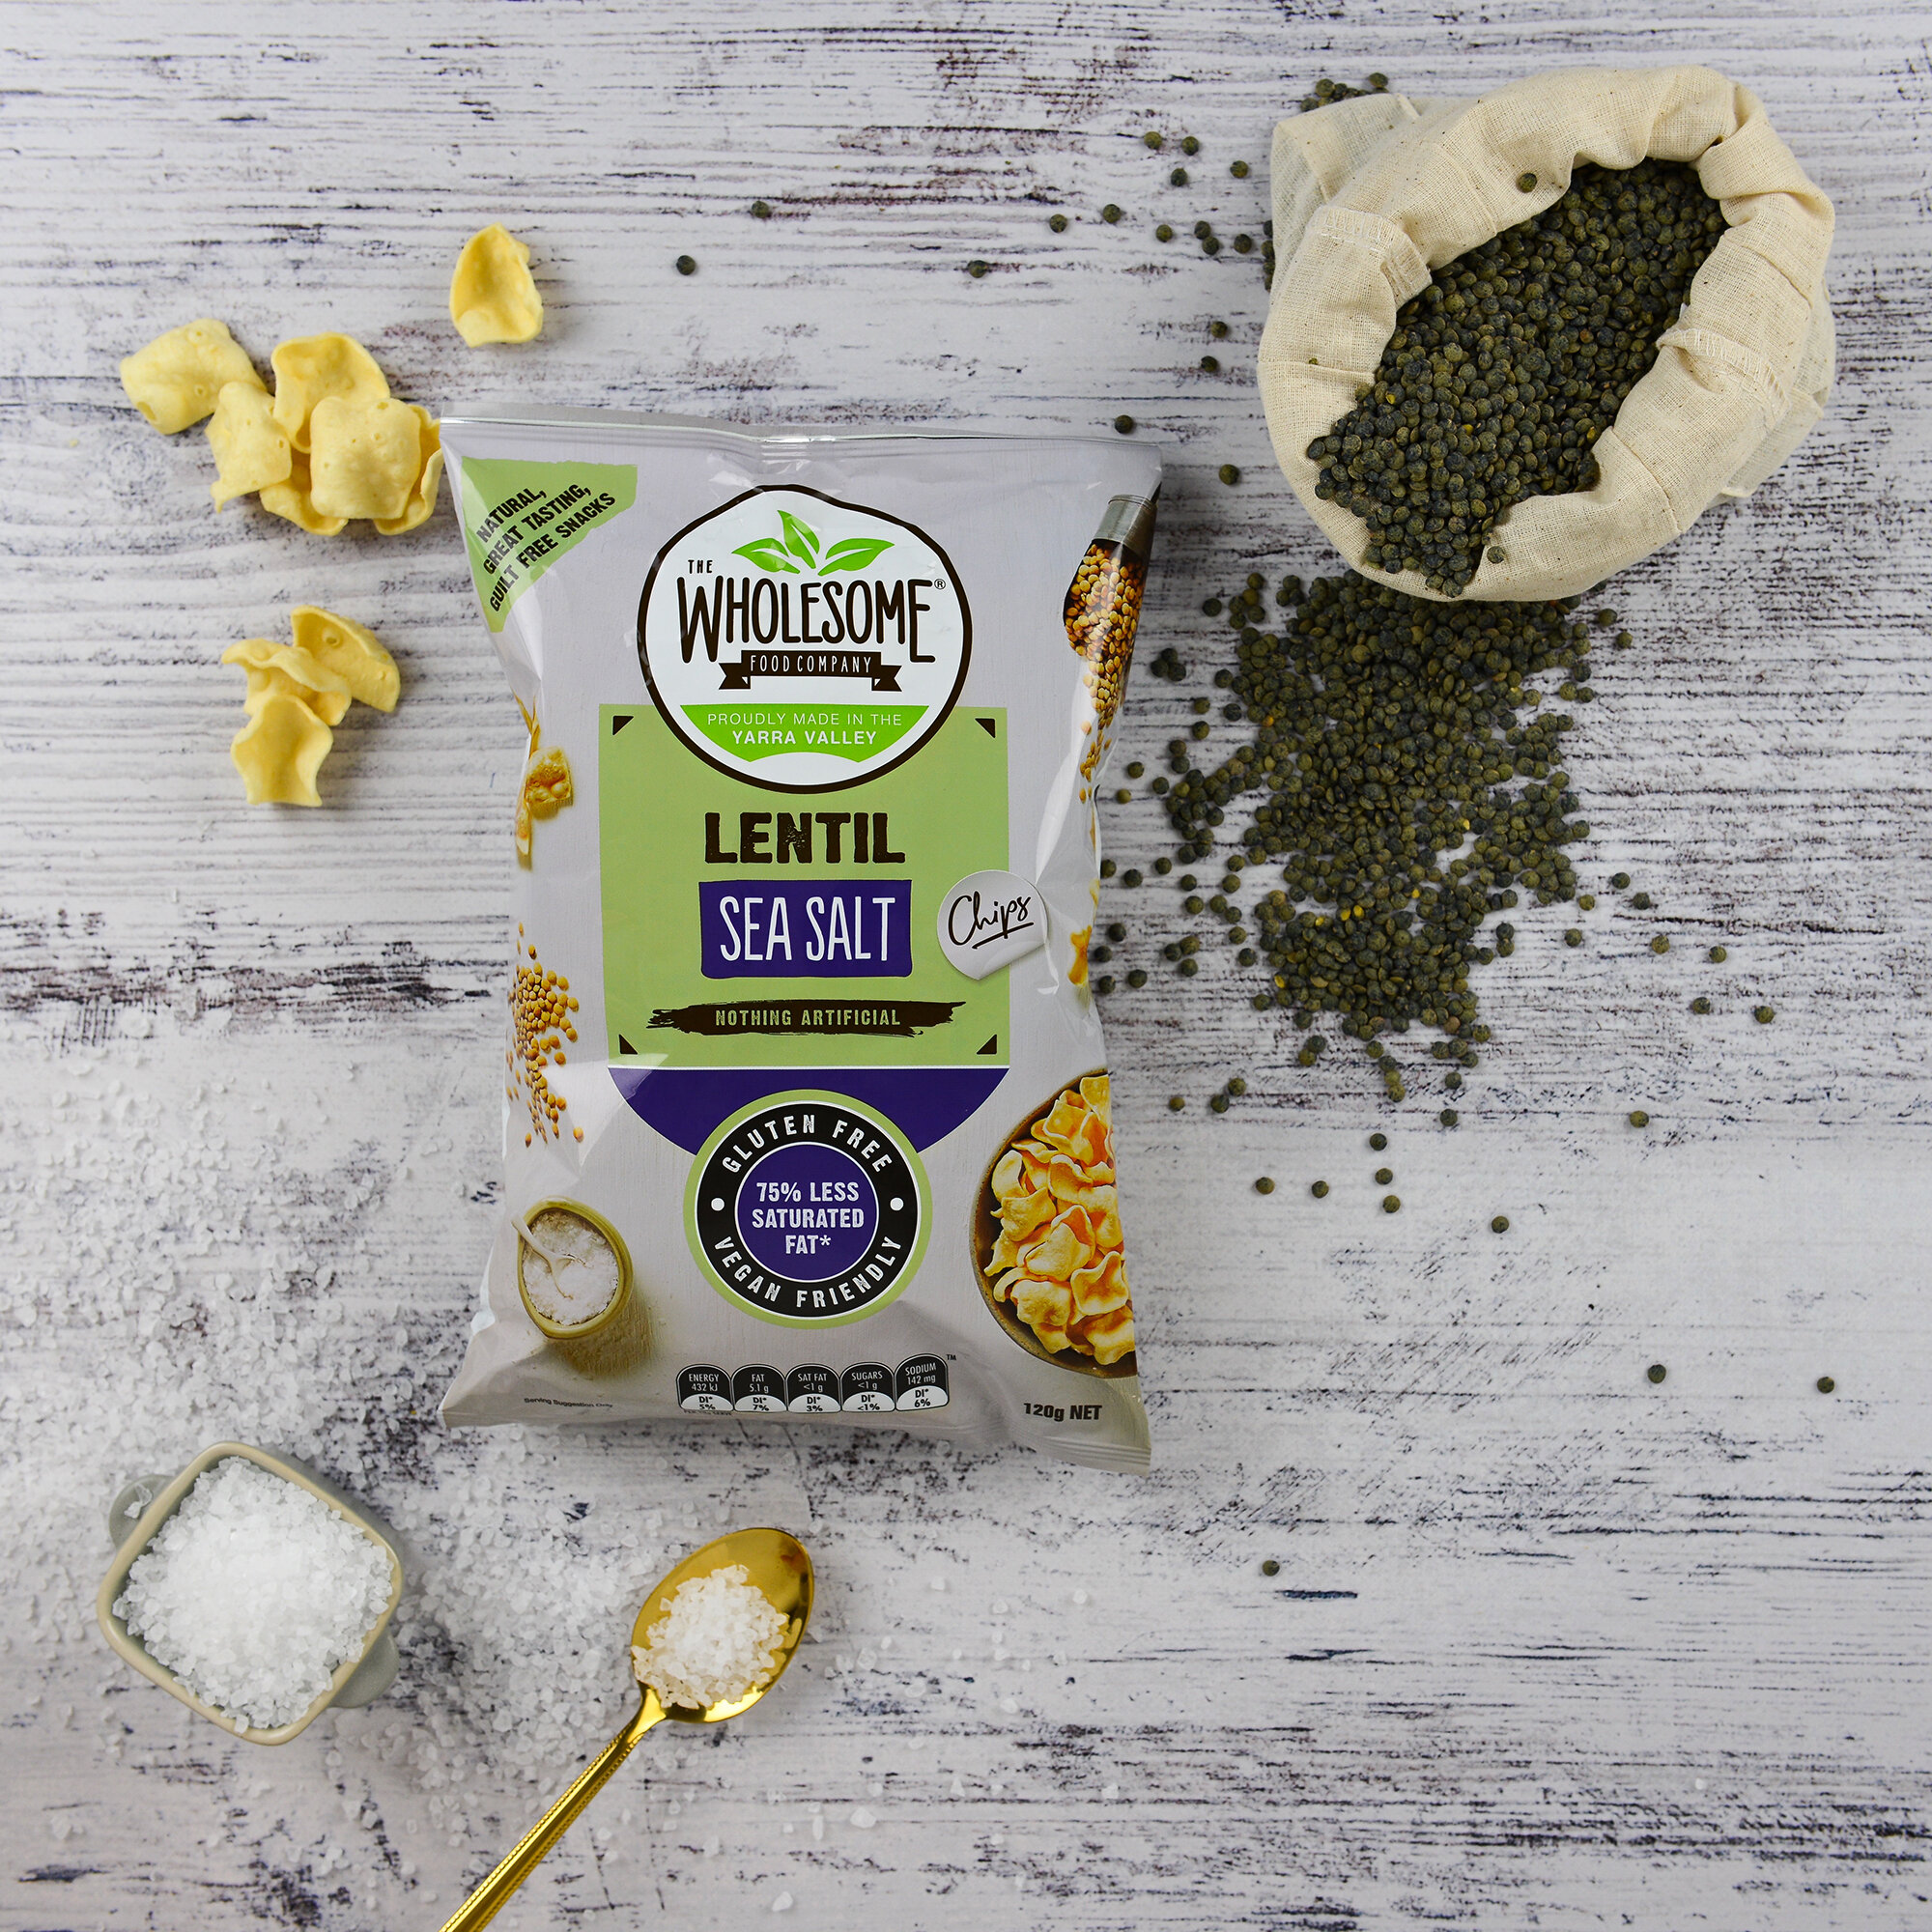 @thewholesomefoodcompany  The Wholesome Food company Is our natural premium brand in health. made for snacking; whether it be sharing with family or on the go, it's better for you.  We make Gluten free snacks with nothing artificial added, while still delivering on exceptional flavour.